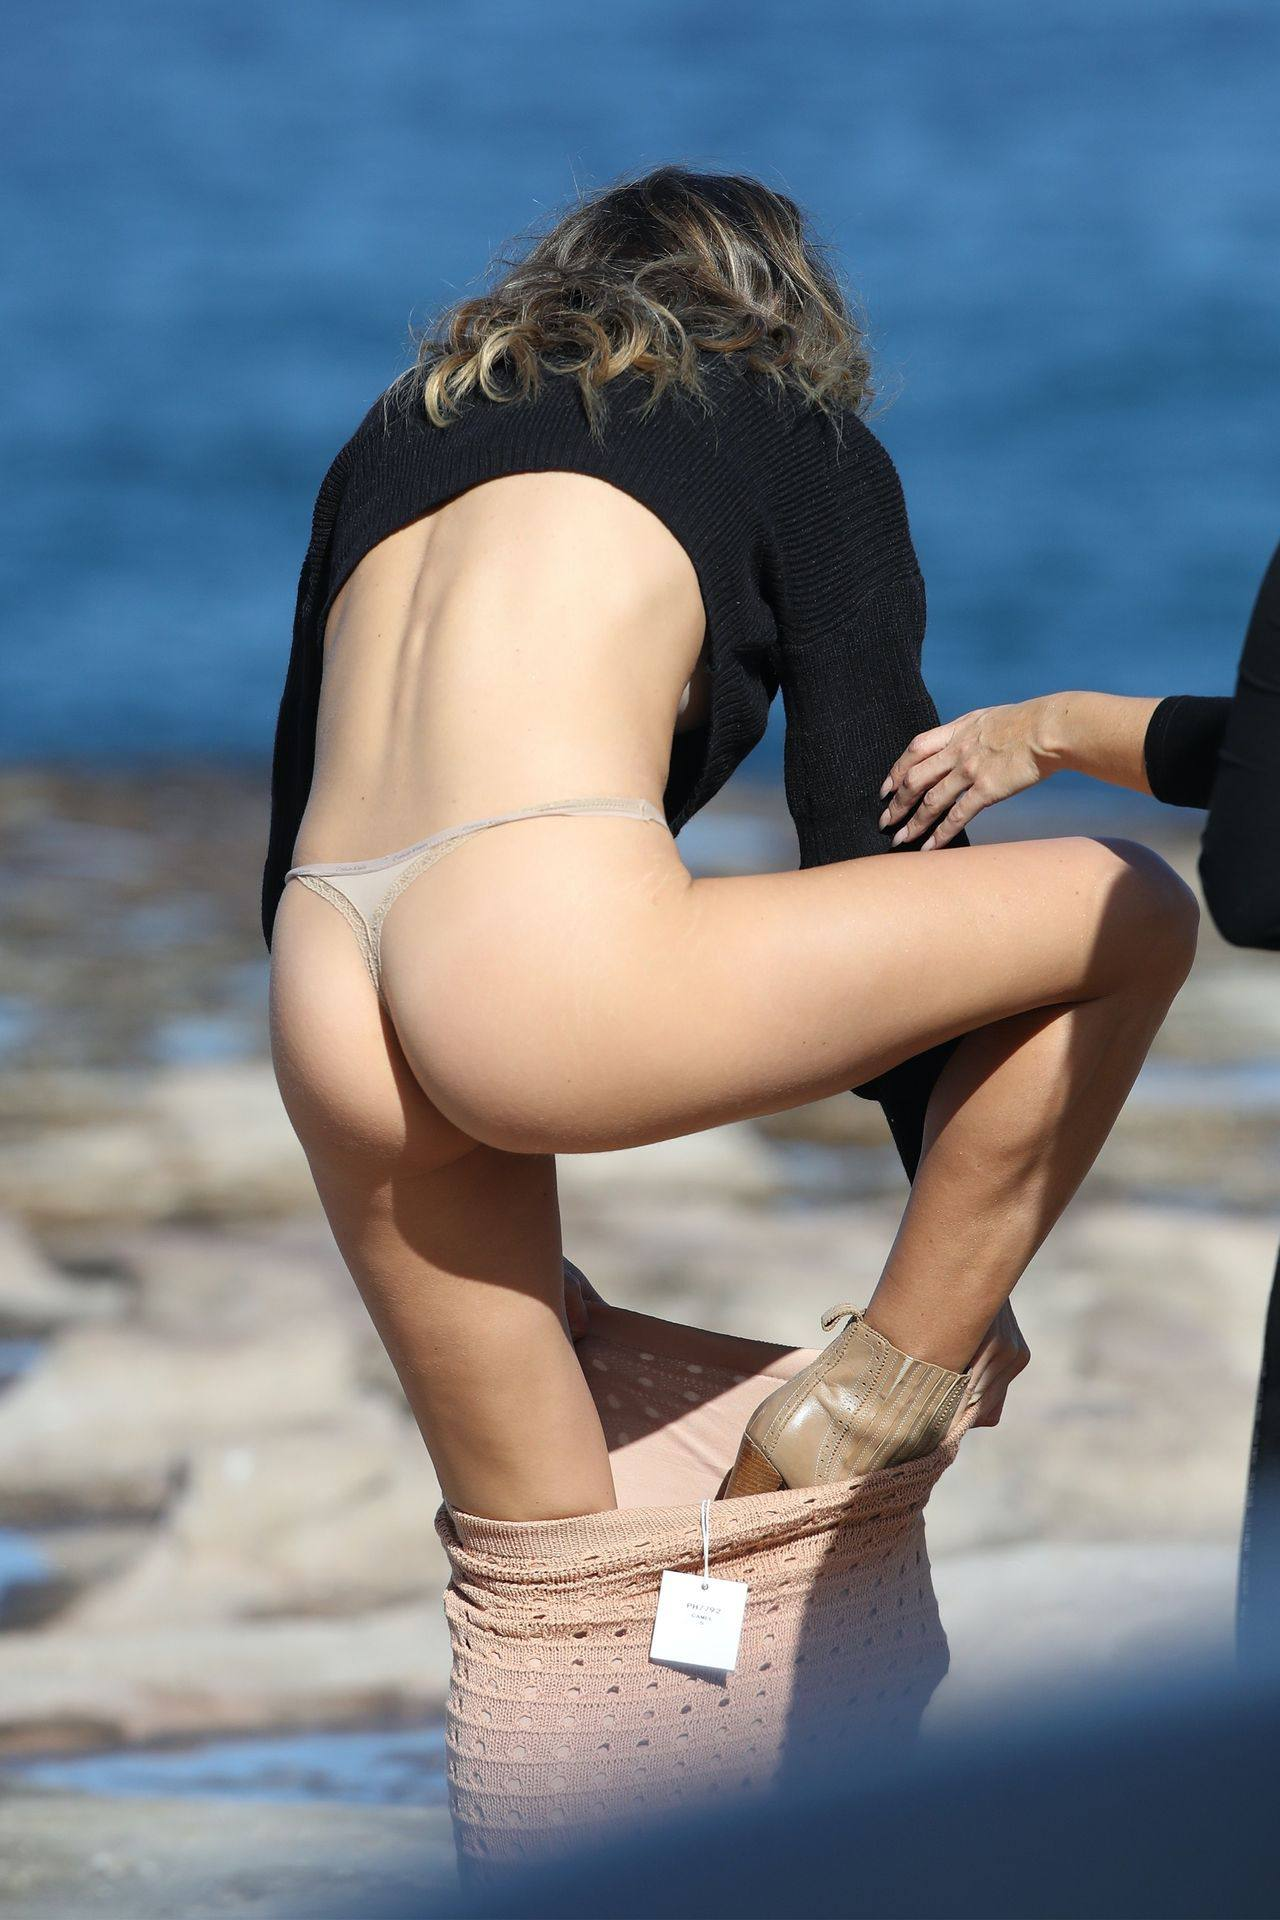 Stephanie Claire Smith – Sexy Big Camel Toe In Panties At Photoshoot In Sydney 0021